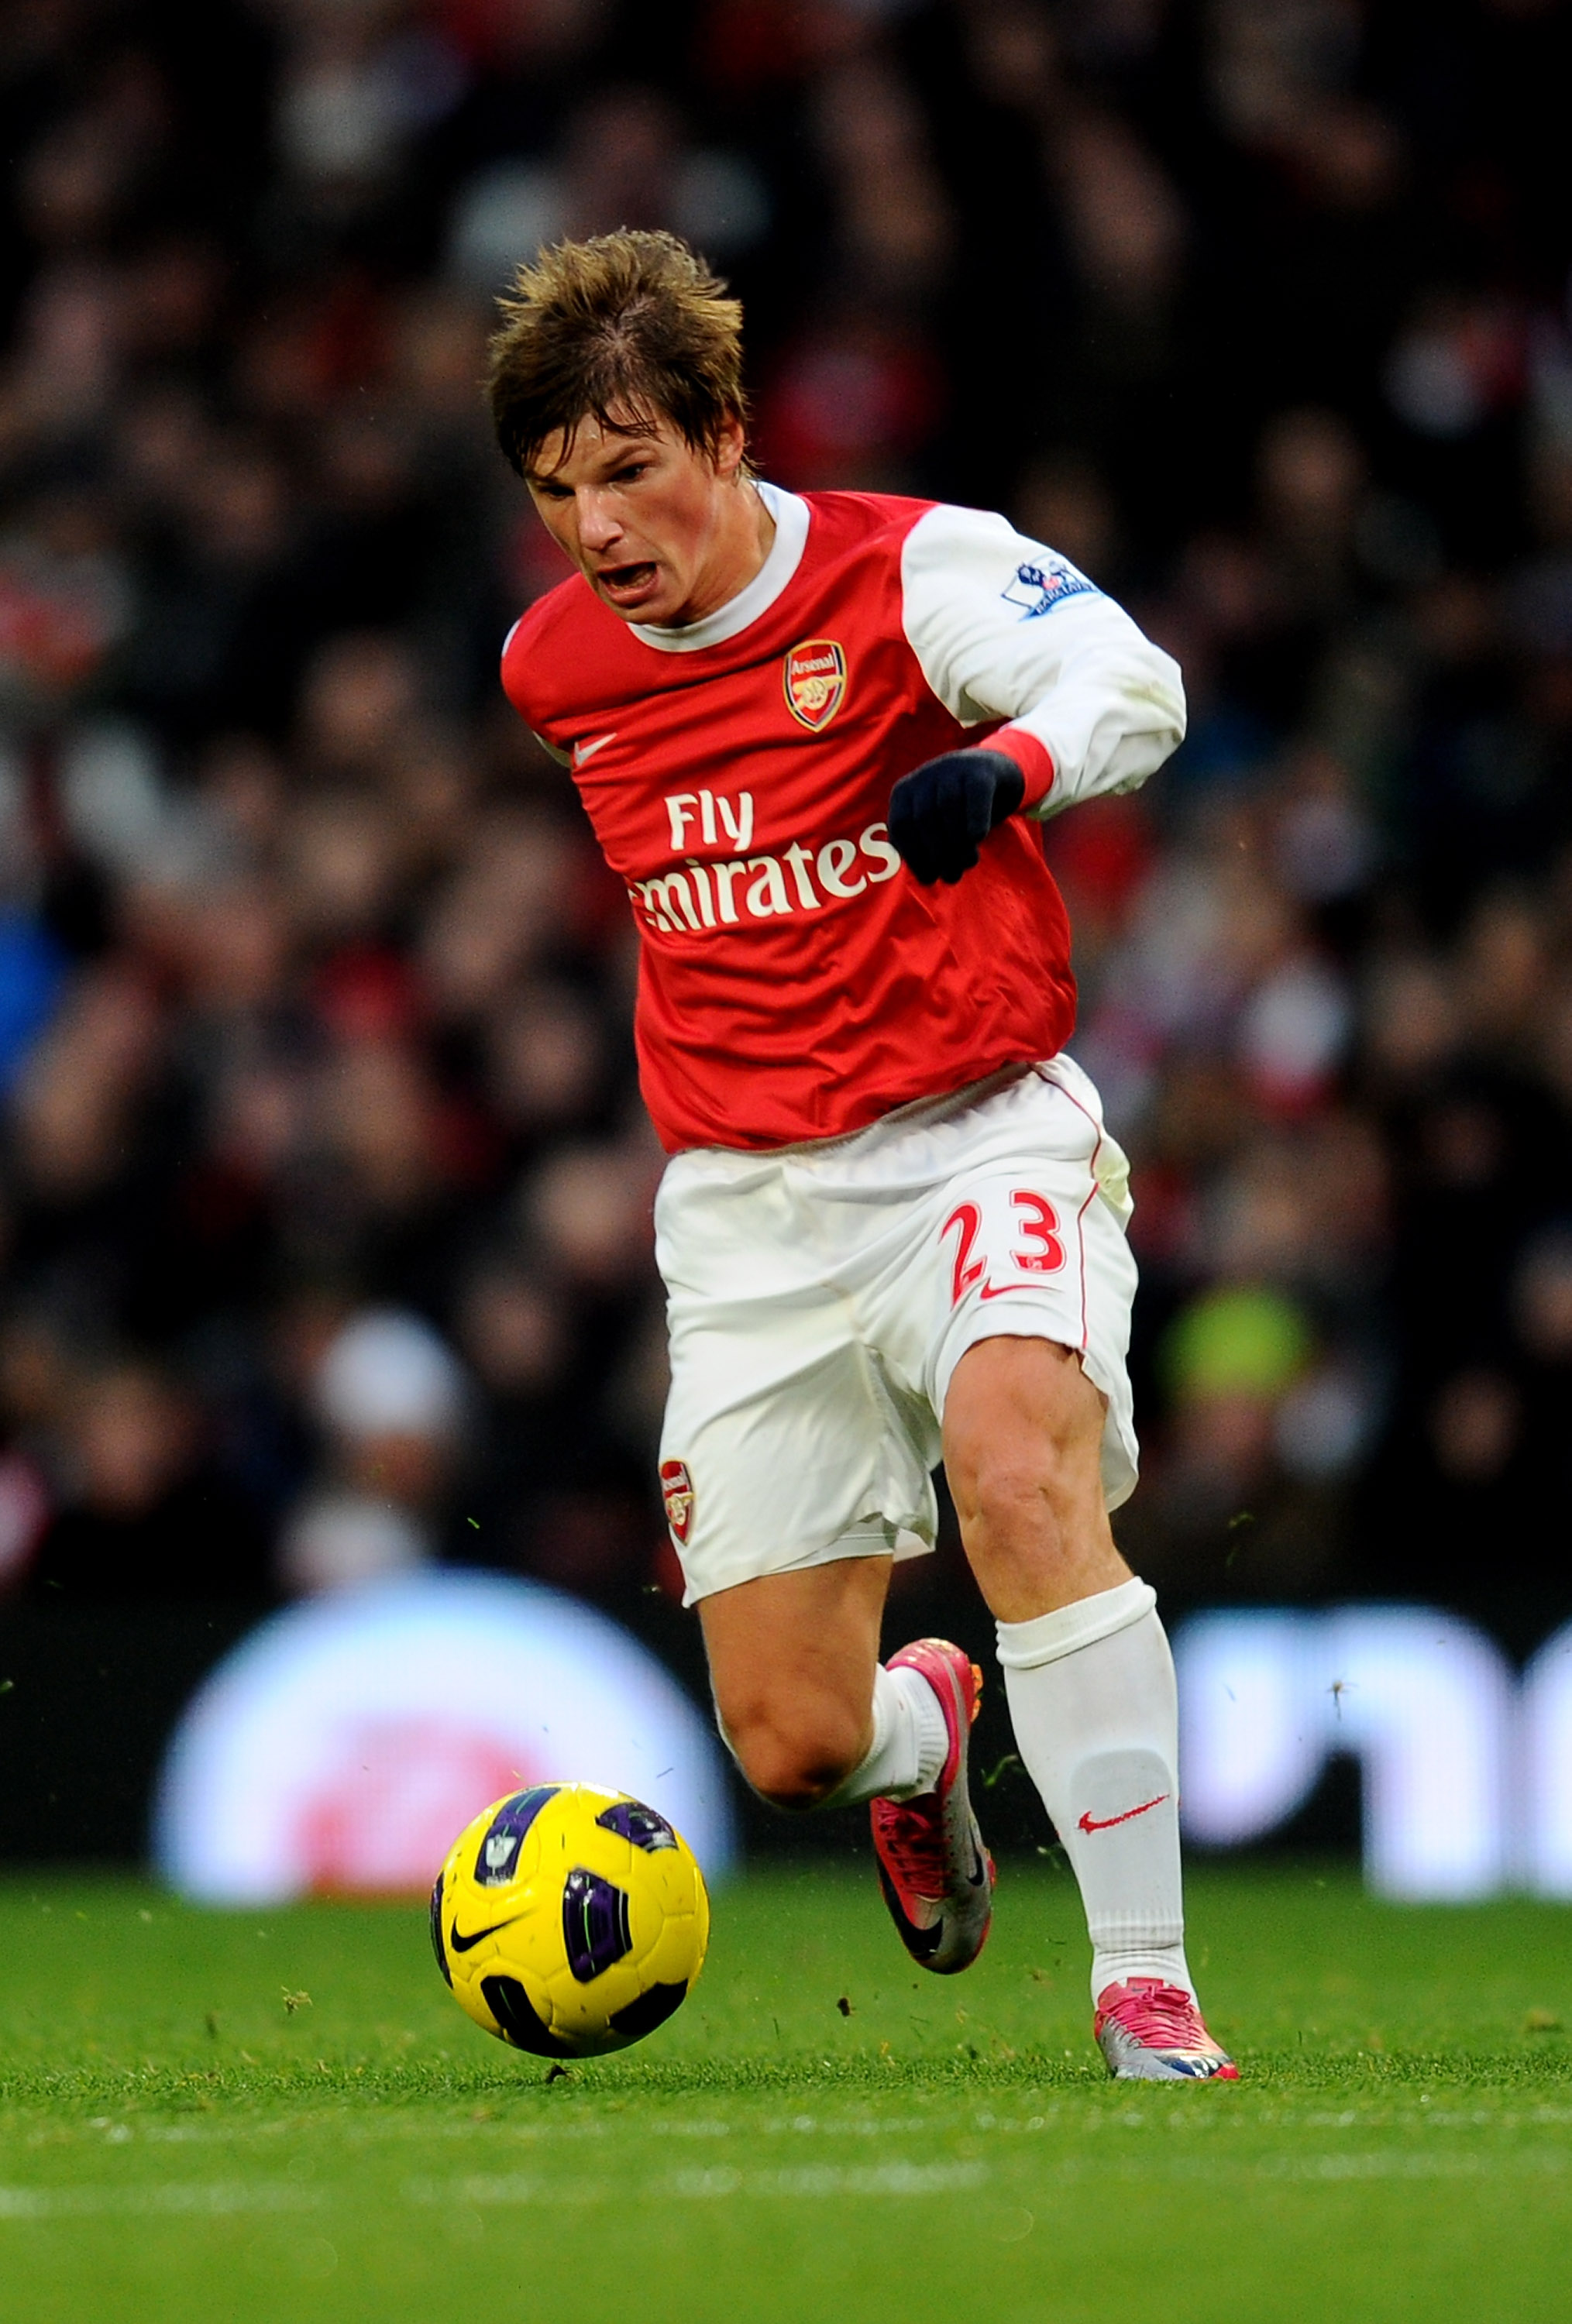 LONDON, ENGLAND - DECEMBER 04:  Andrey Arshavin of Arsenal during the Barclays Premier League match between Arsenal and Fulham at the Emirates Stadium on December 4, 2010 in London, England.  (Photo by Mike Hewitt/Getty Images)